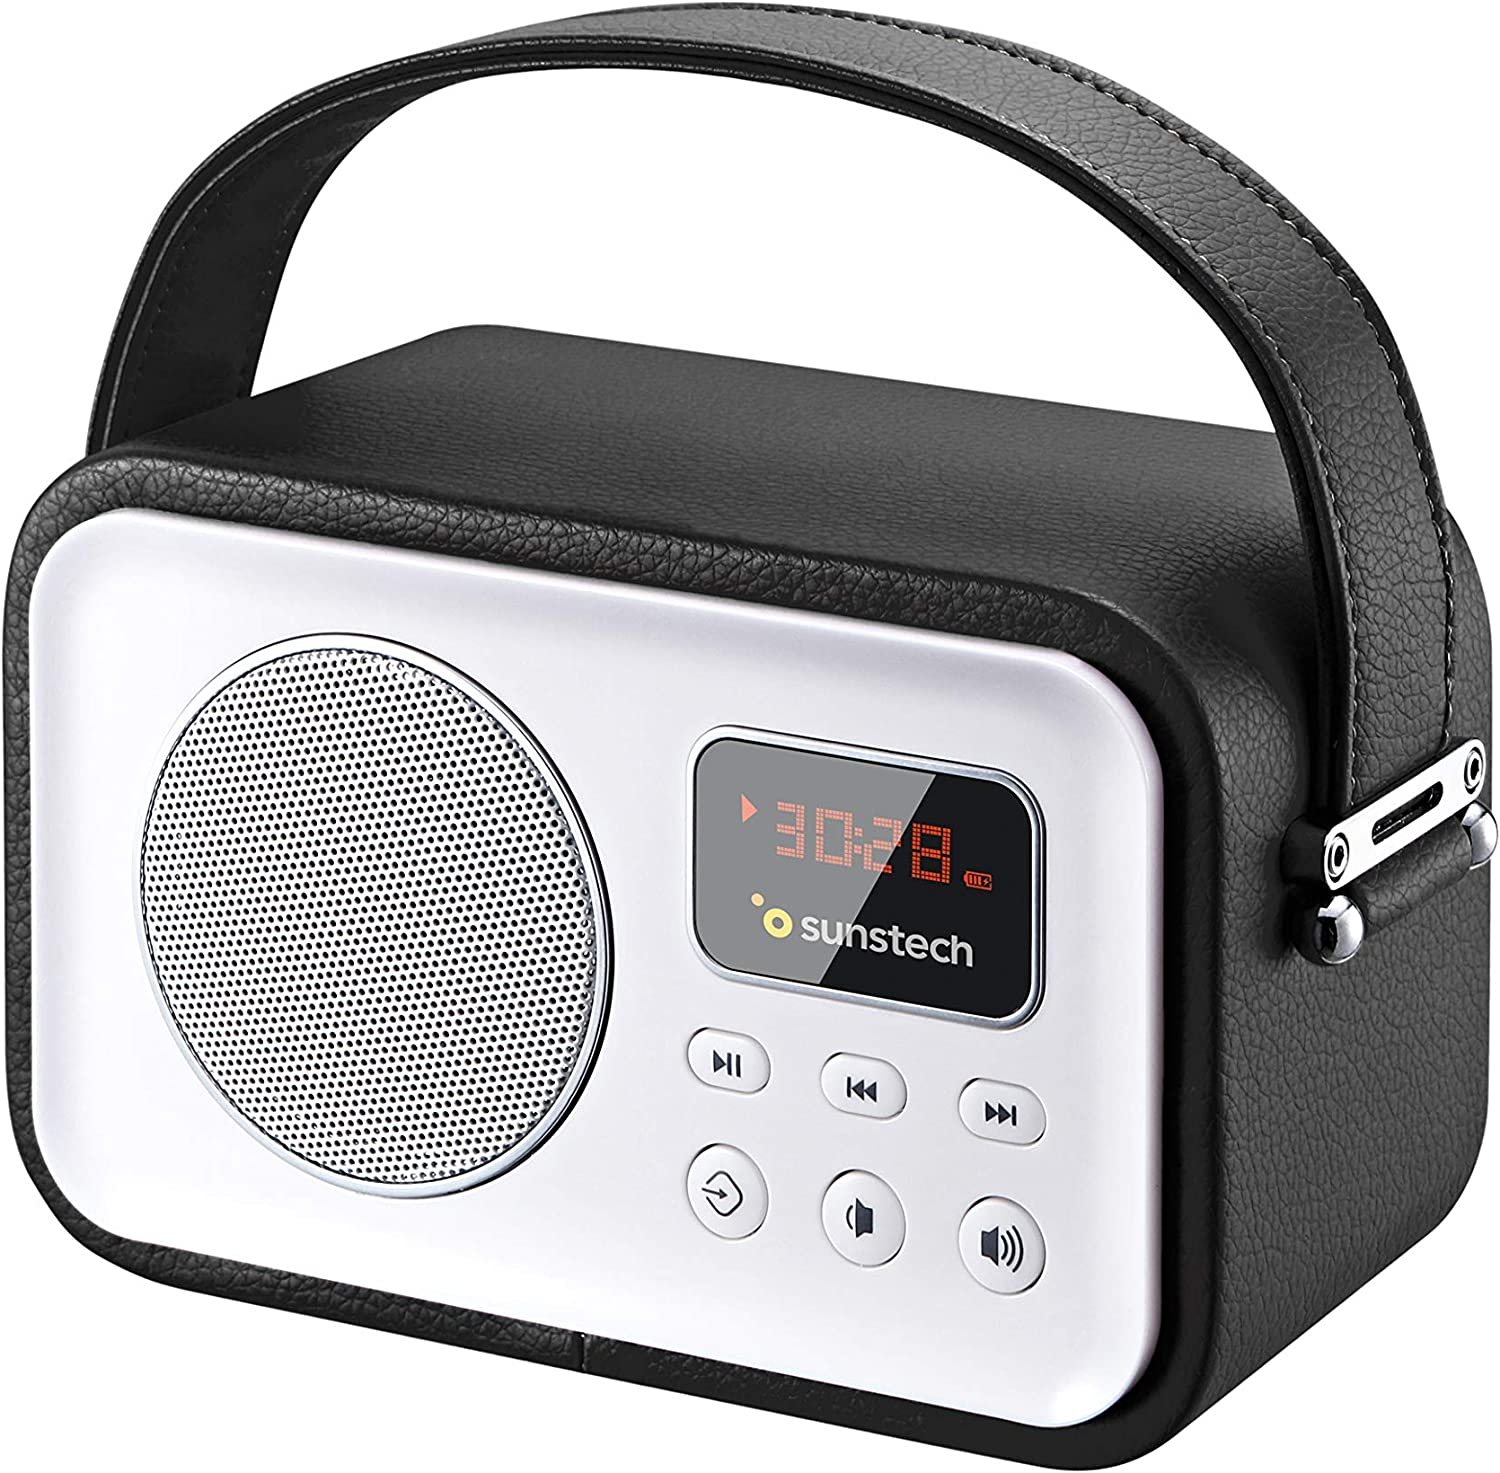 Sunstech RPBT450BK - Radio de diseño Retro con Bluetooth, Color Negro